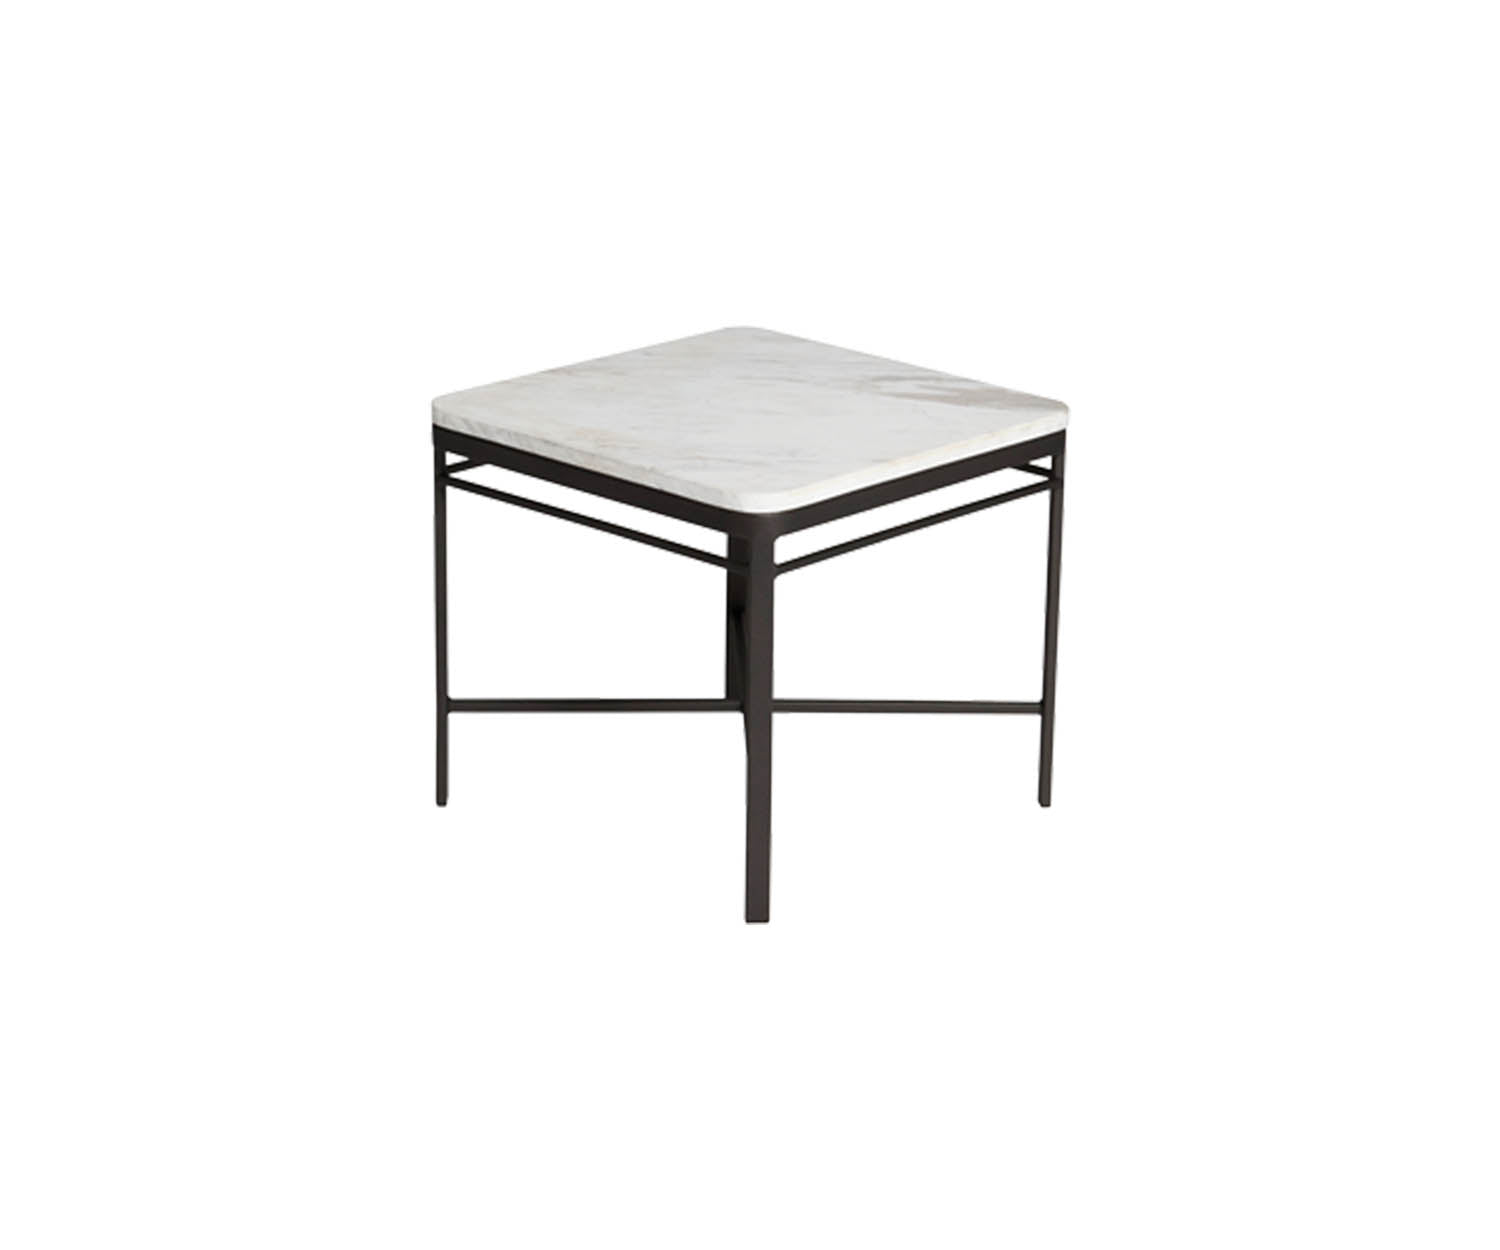 Triconfort 72760 Side Table Black Frame and Marble Top